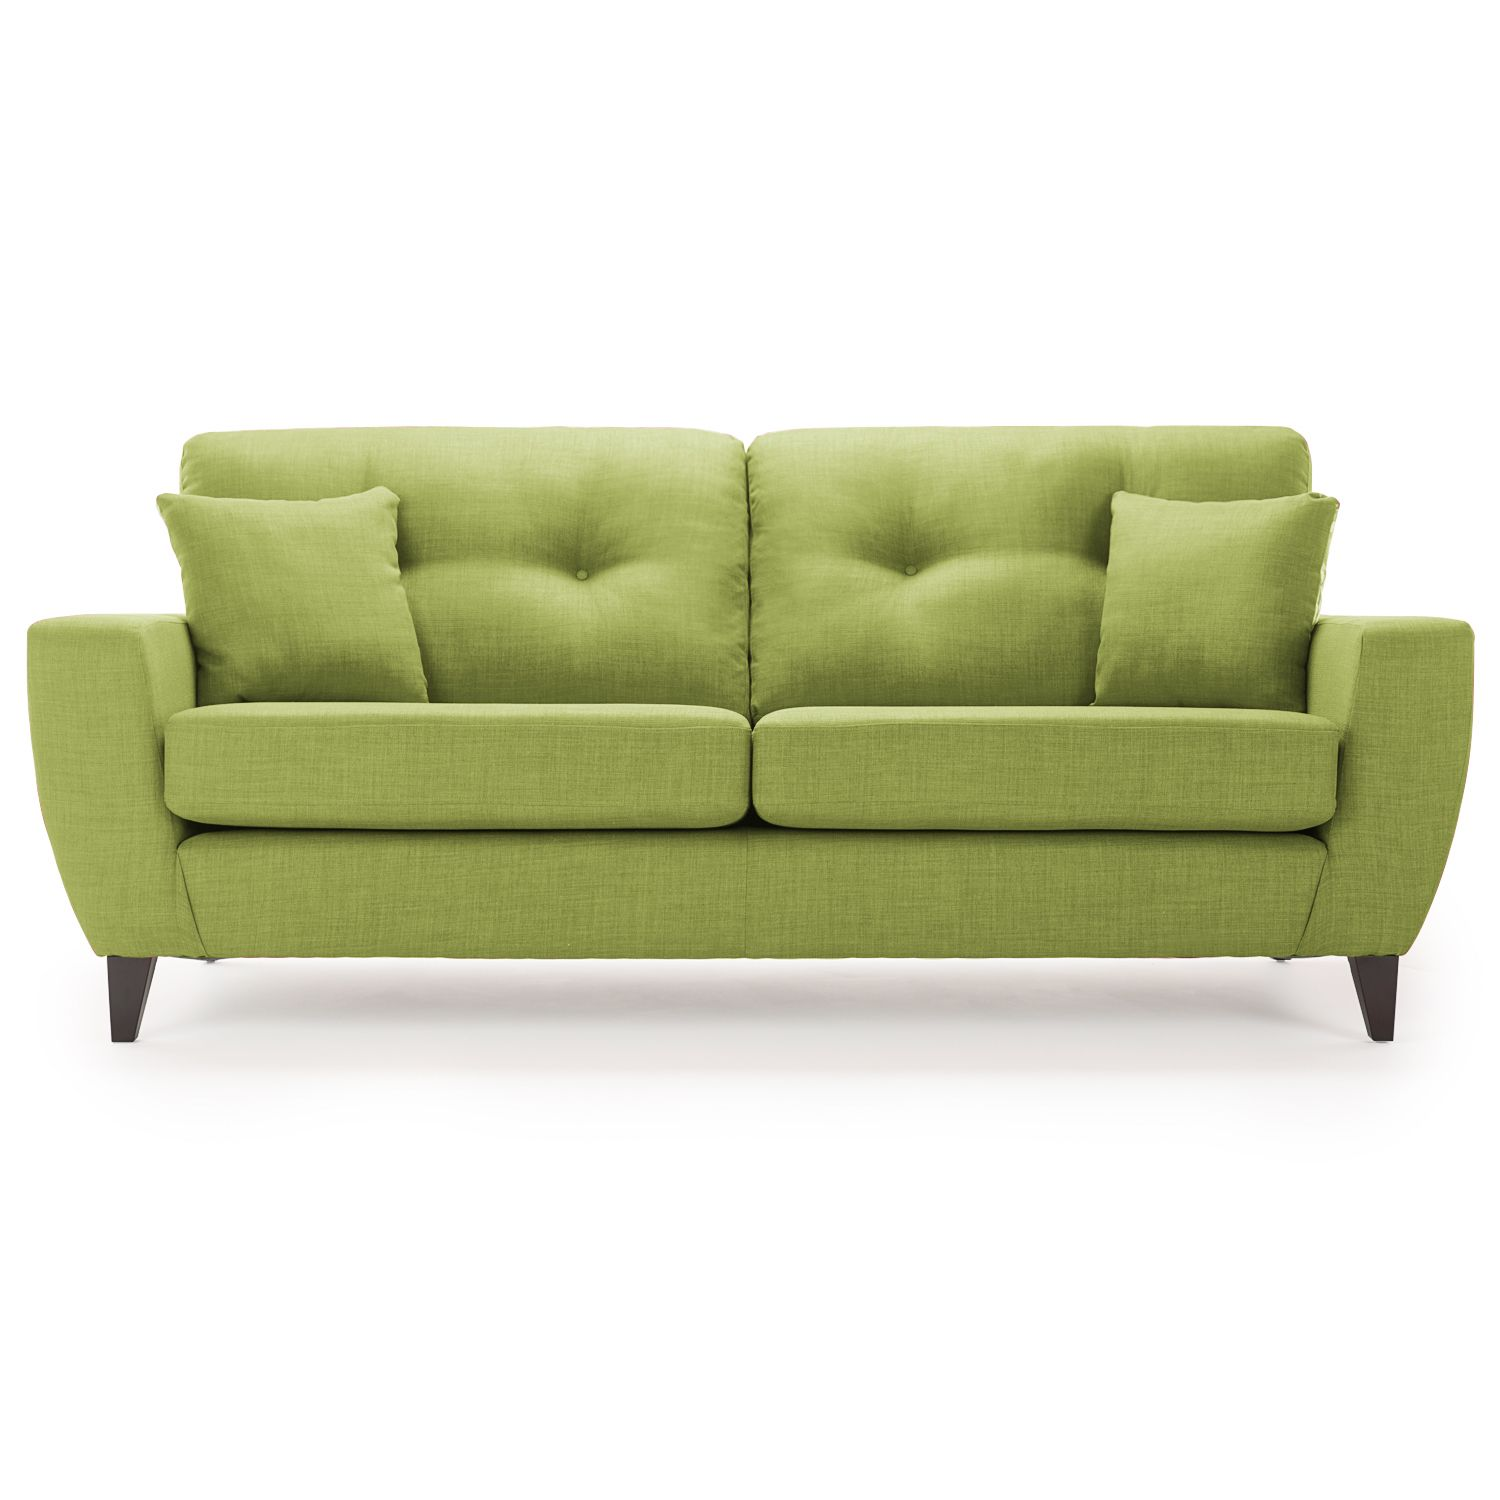 Groovy Sofas Next Day Delivery Sofas From Worldstores Everything Pdpeps Interior Chair Design Pdpepsorg